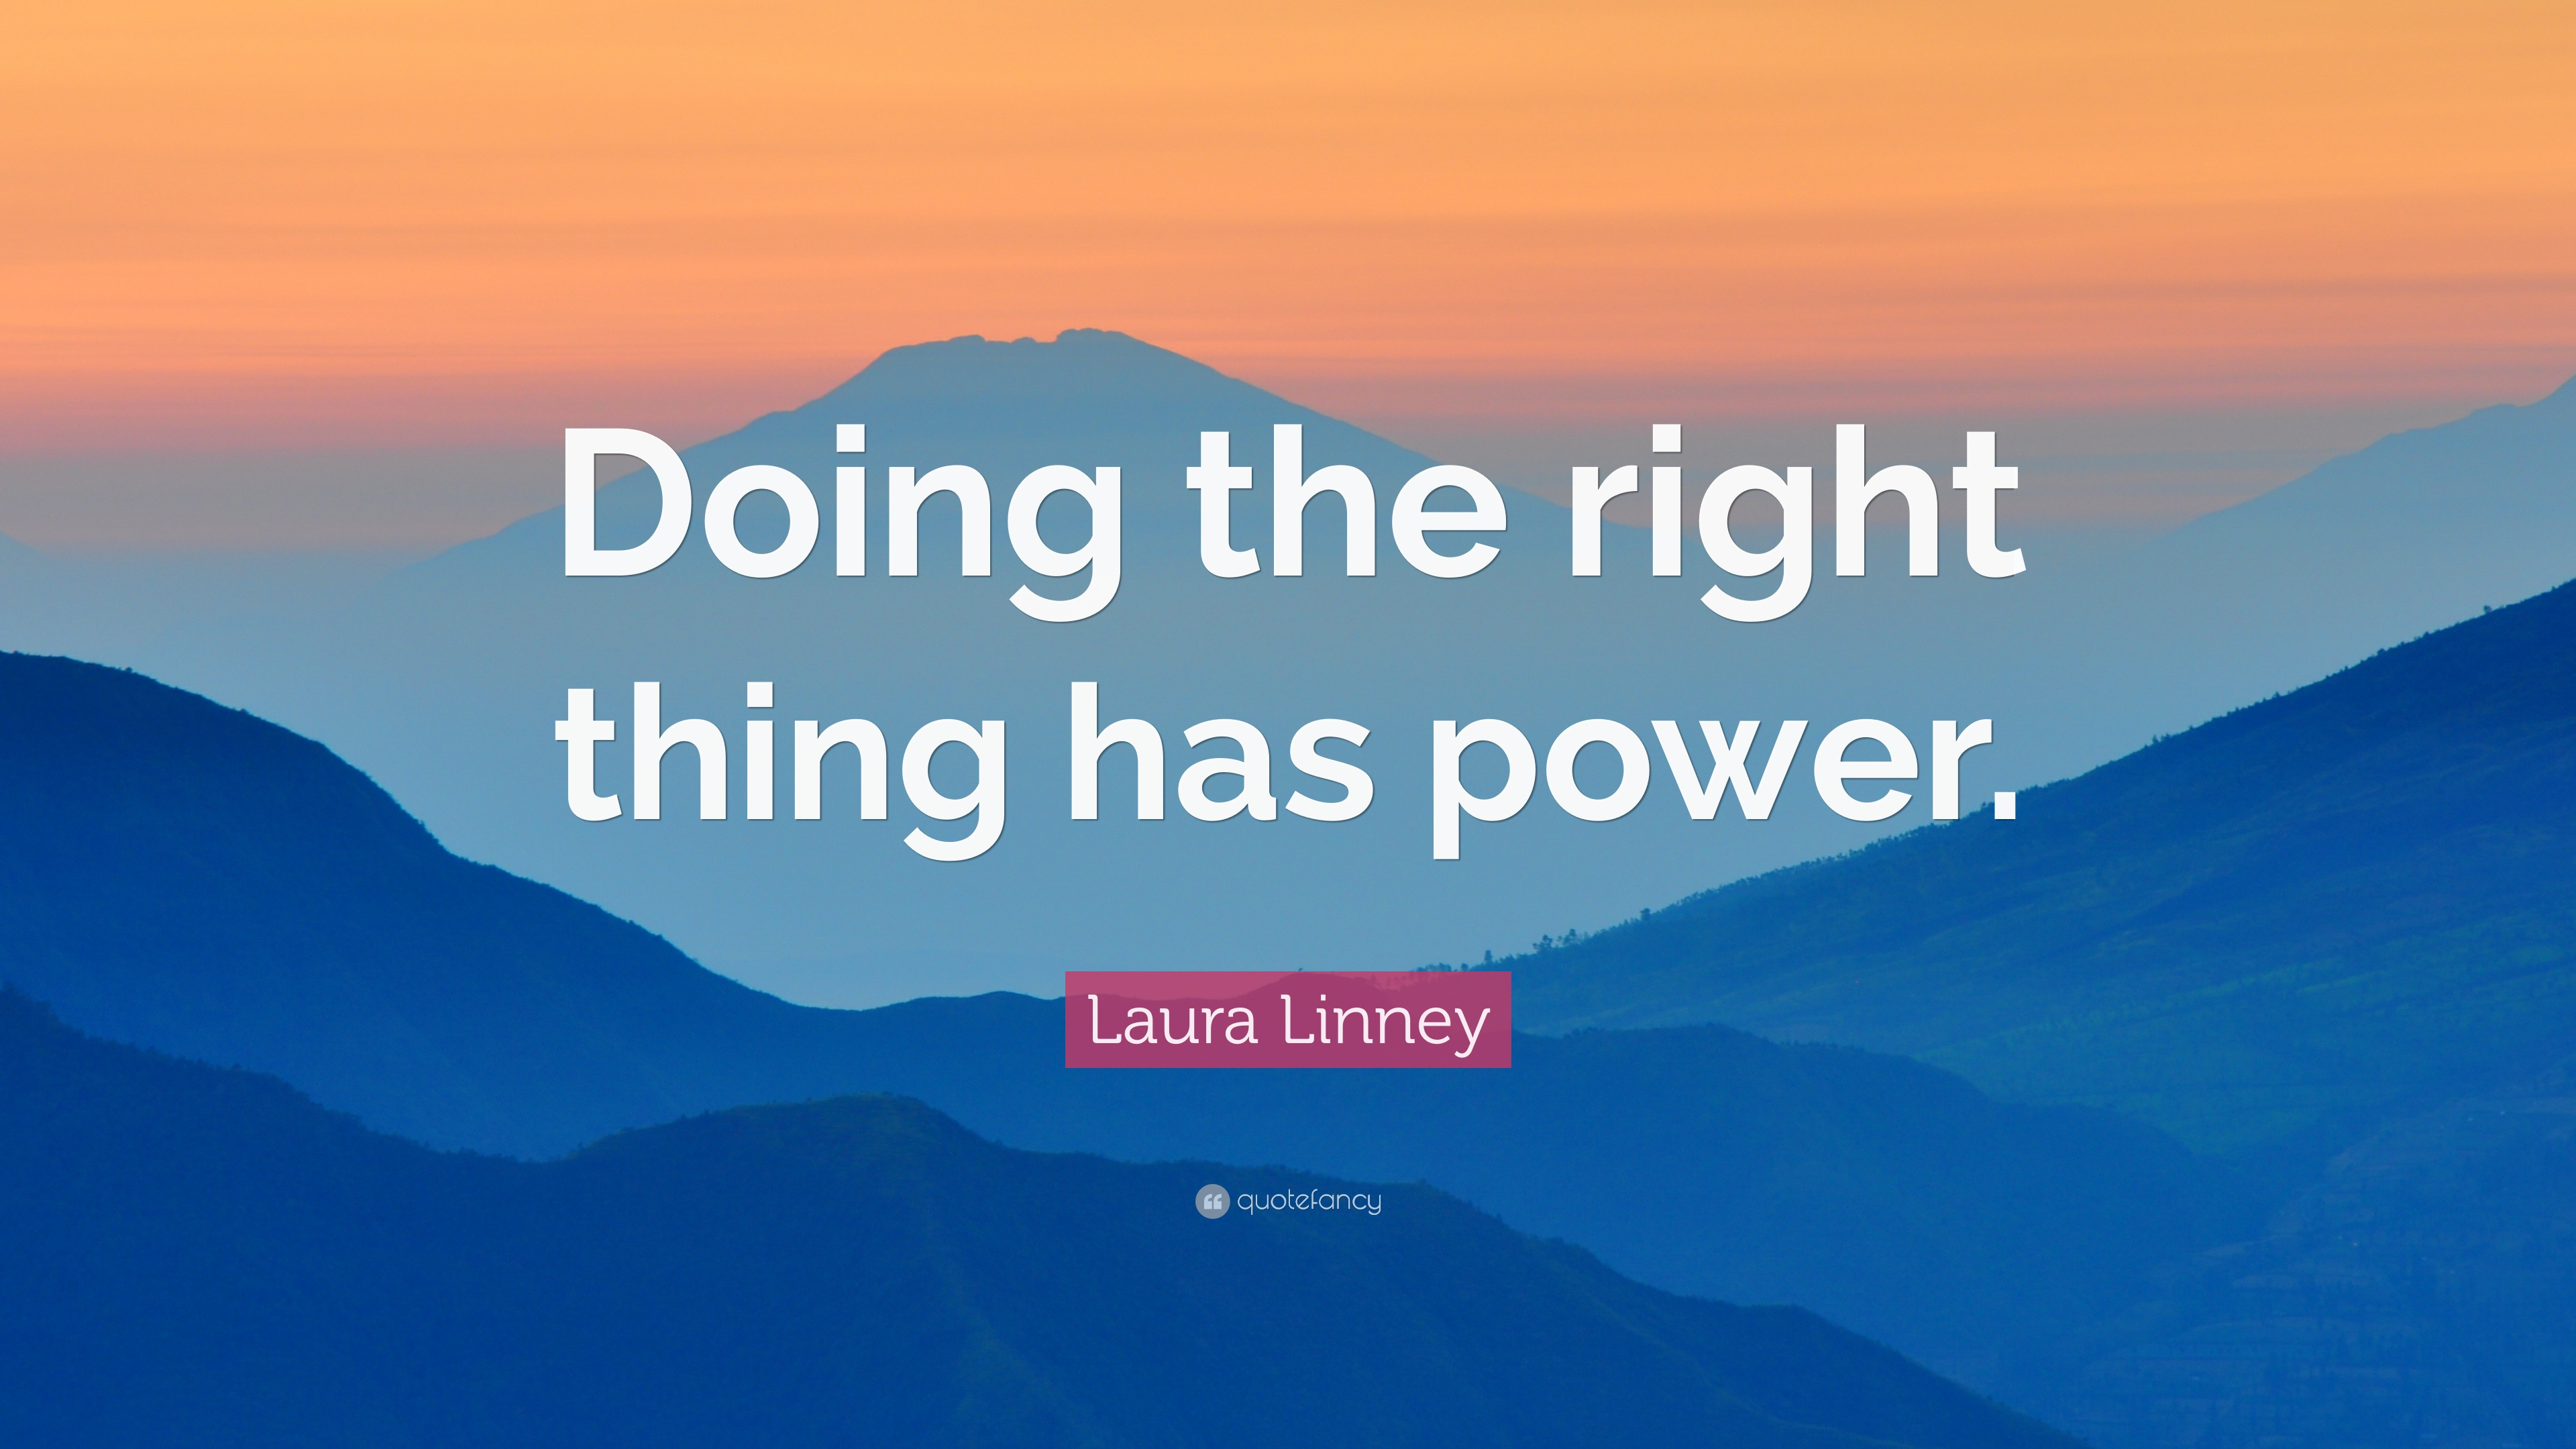 Laura Linney Quote Doing The Right Thing Has Power 7 Wallpapers